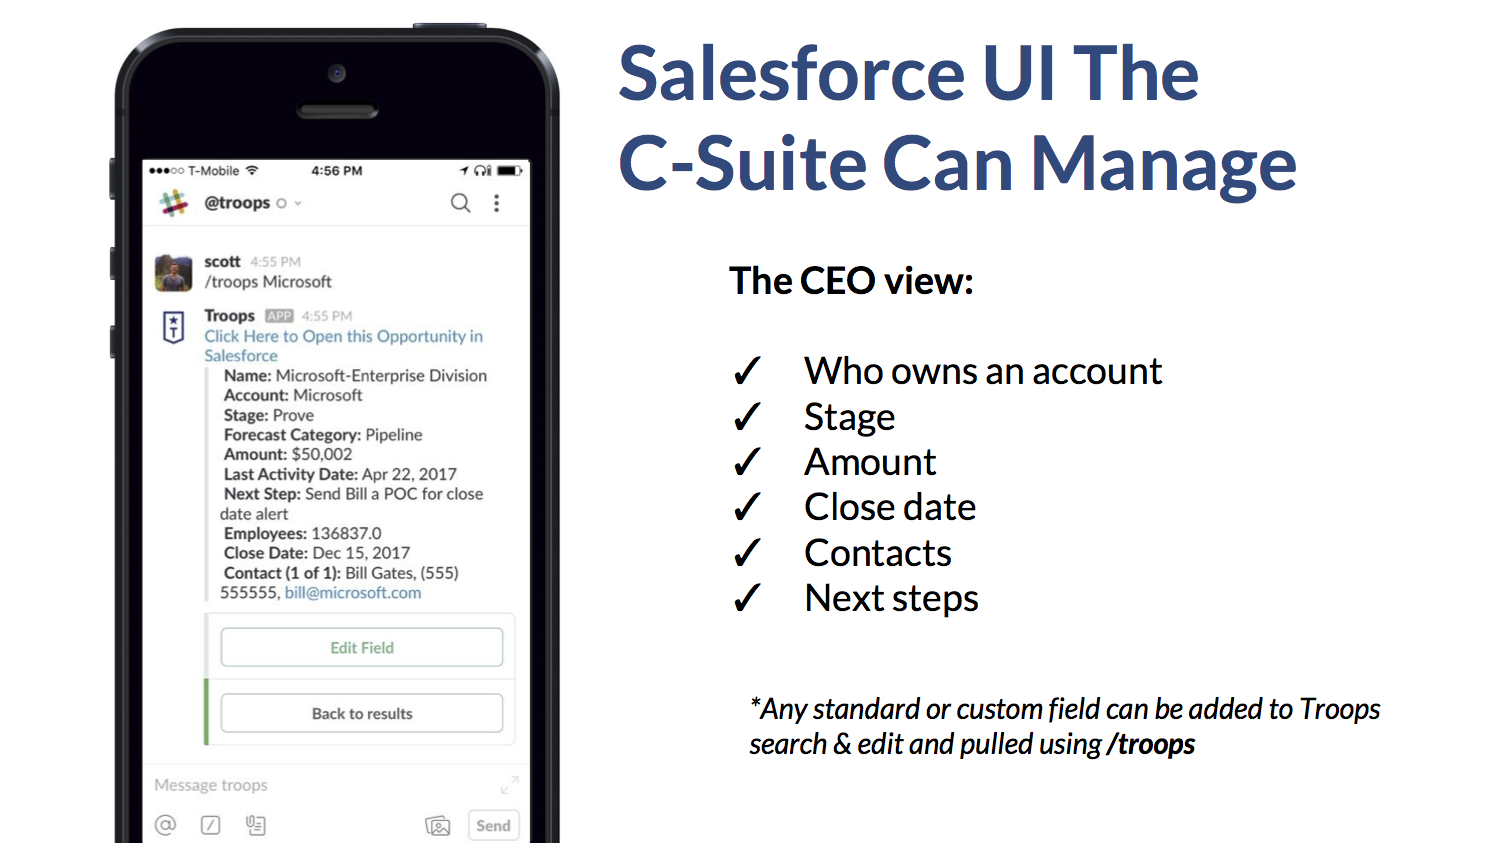 An Execs Guide to Staying Out of Salesforce.FinalV2 (dragged) 1